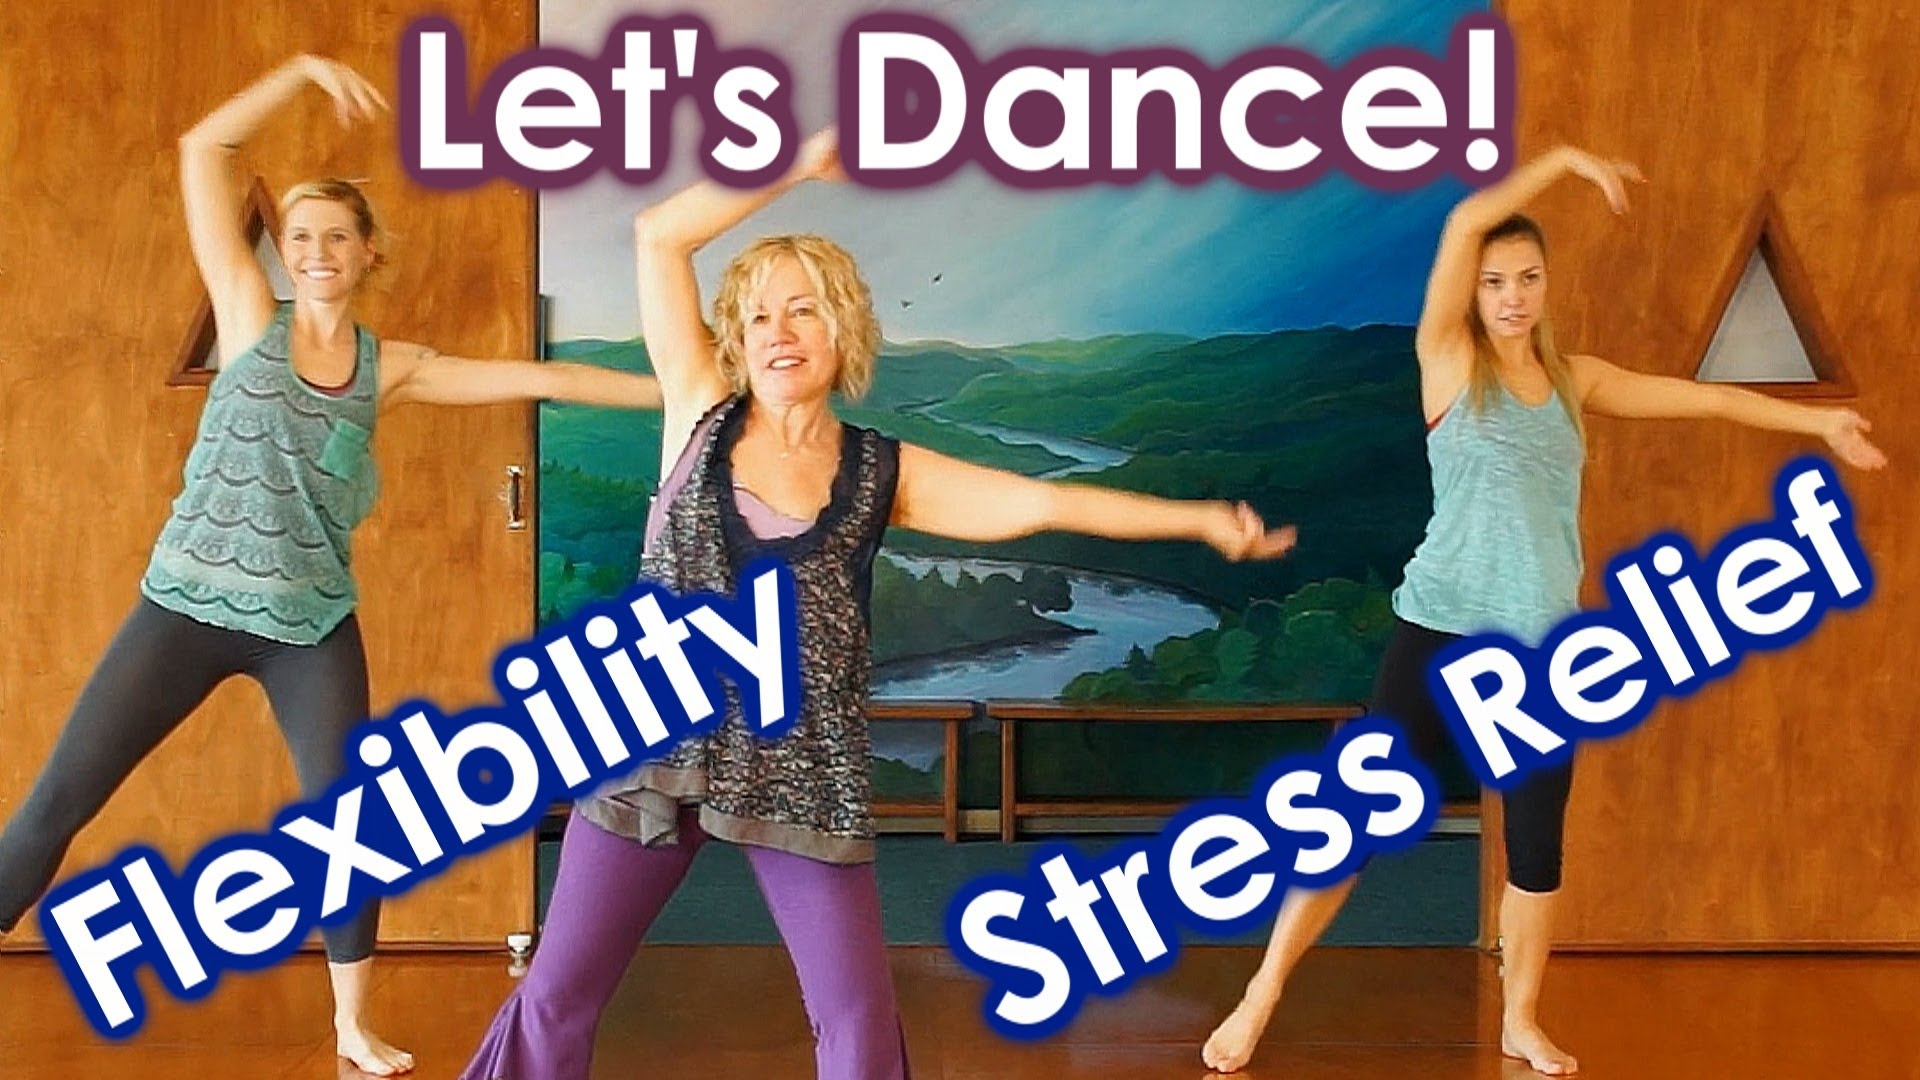 Fun Dance Workout Routine For Beginners To Do At Home – Dance w/ Donna